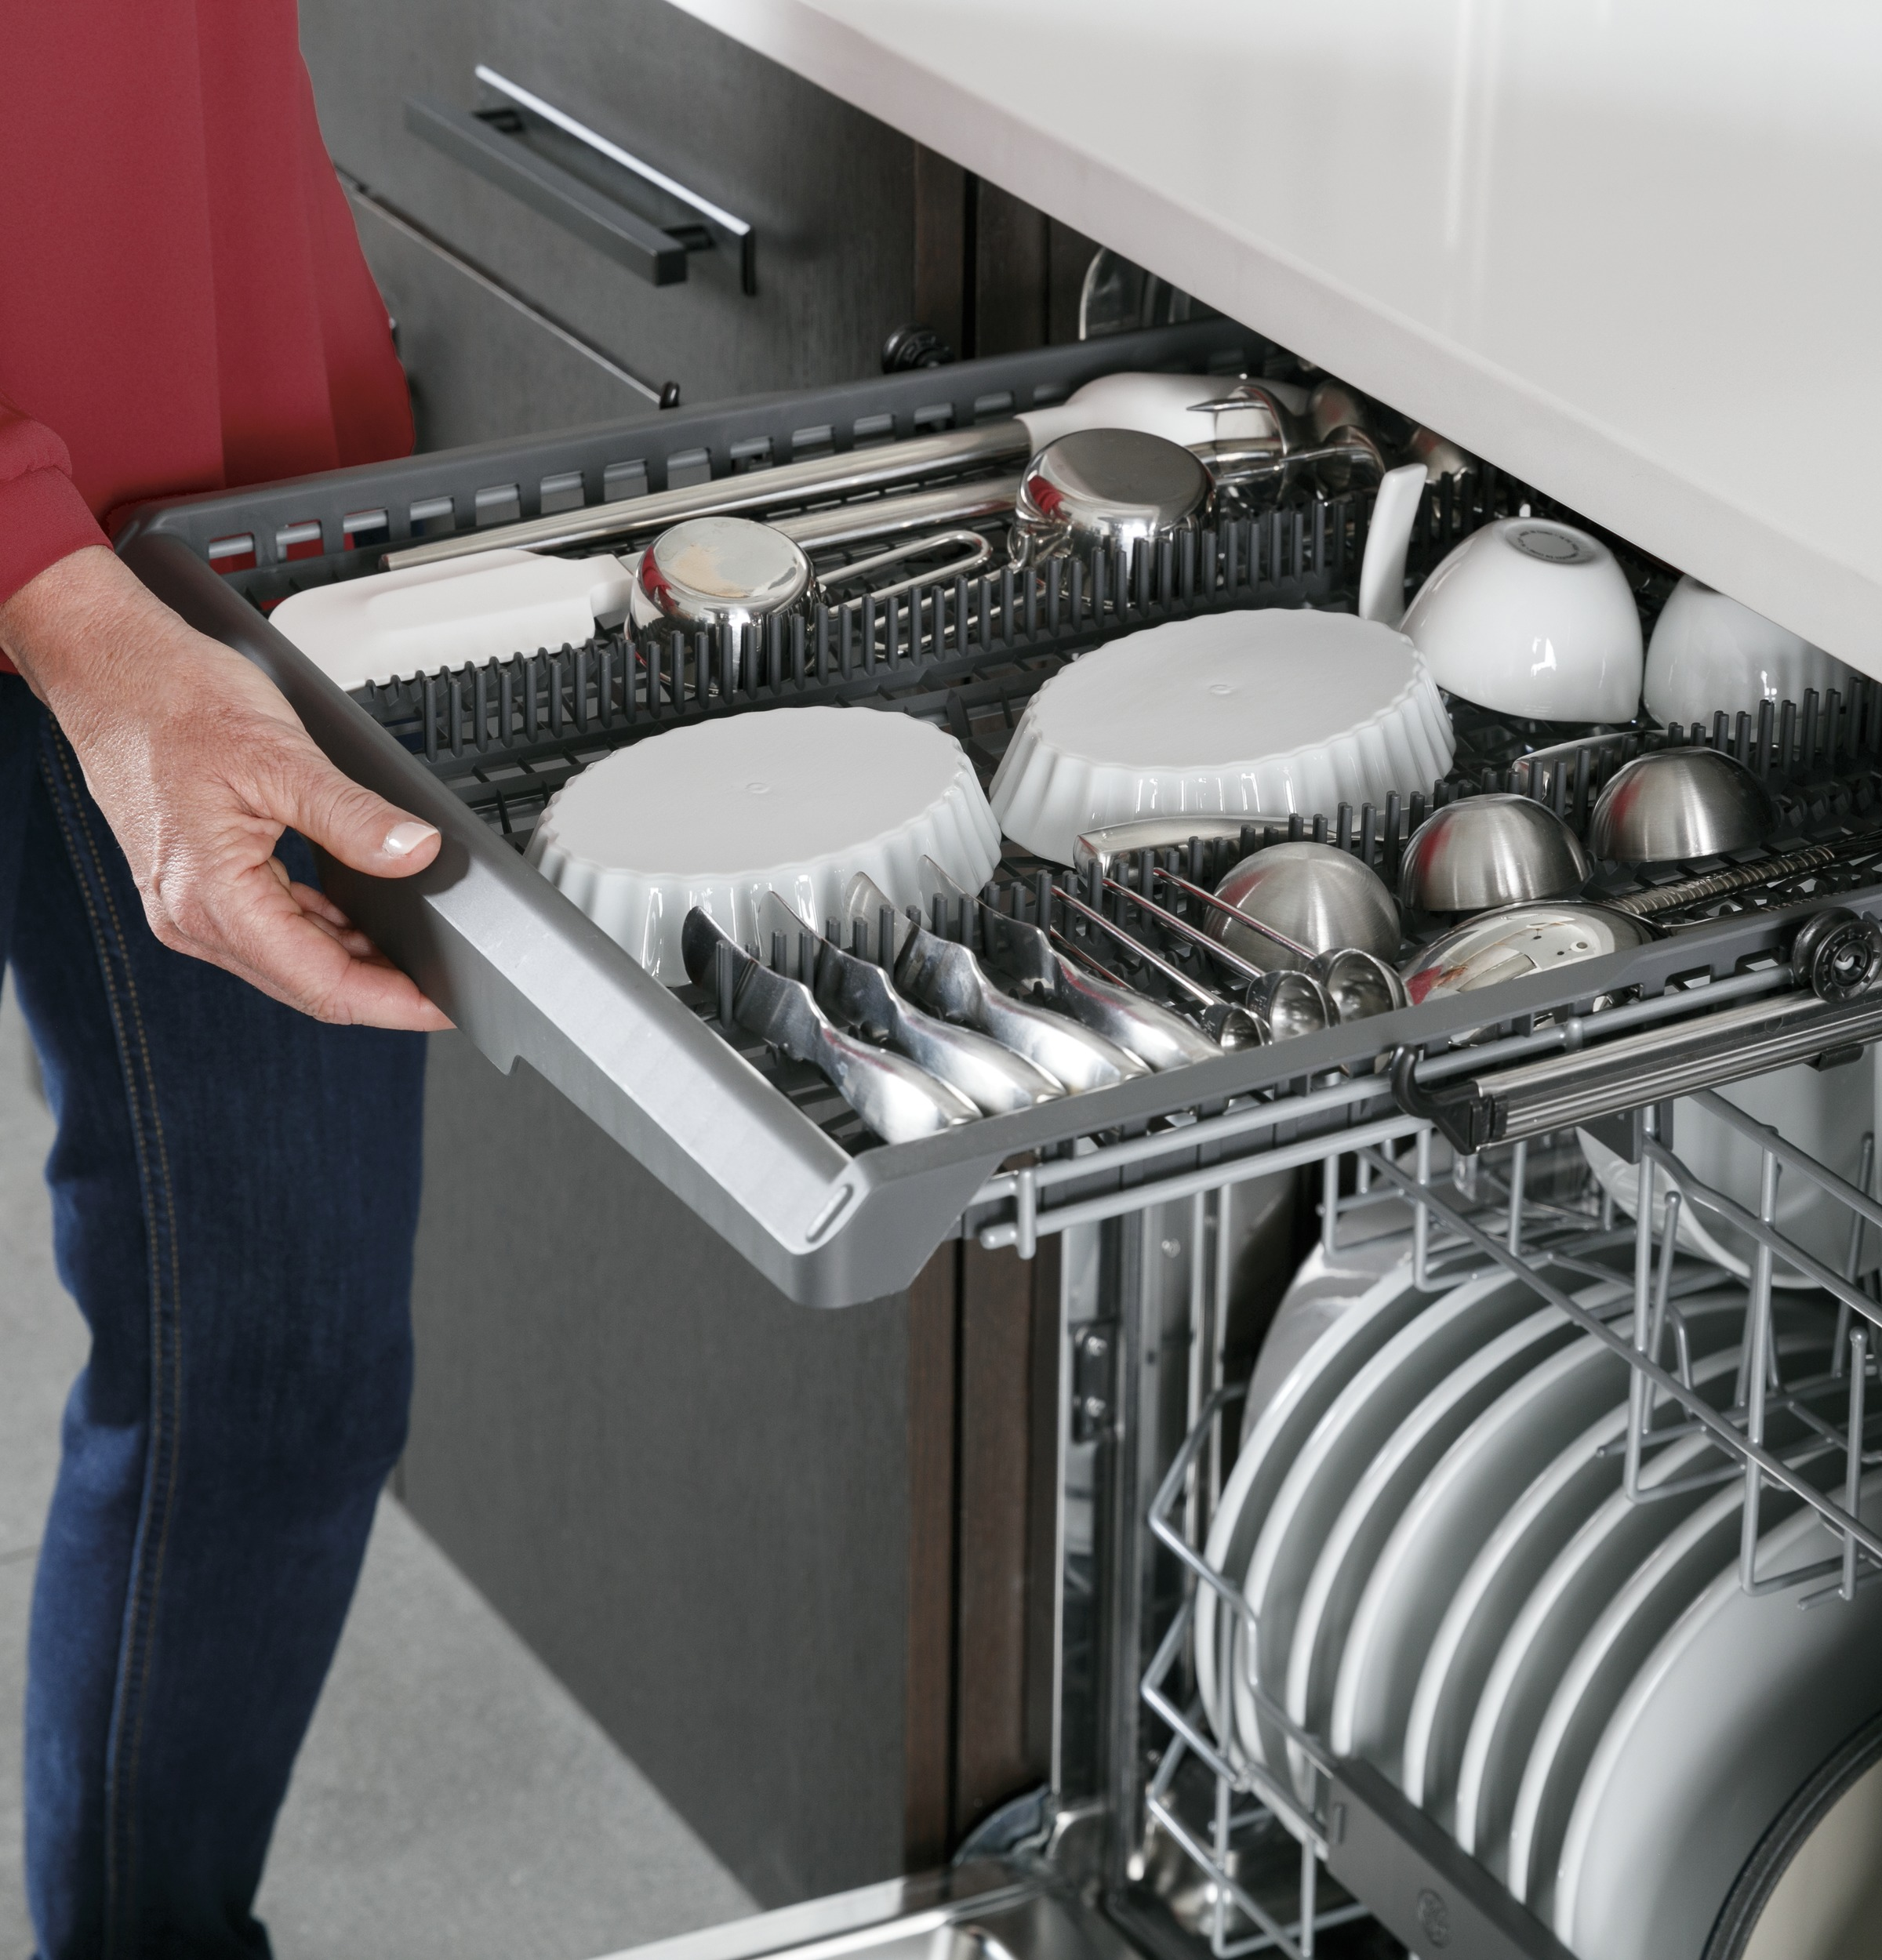 Model: PDP715SBNTS | GE Profile GE Profile™ Stainless Steel Interior Dishwasher with Hidden Controls